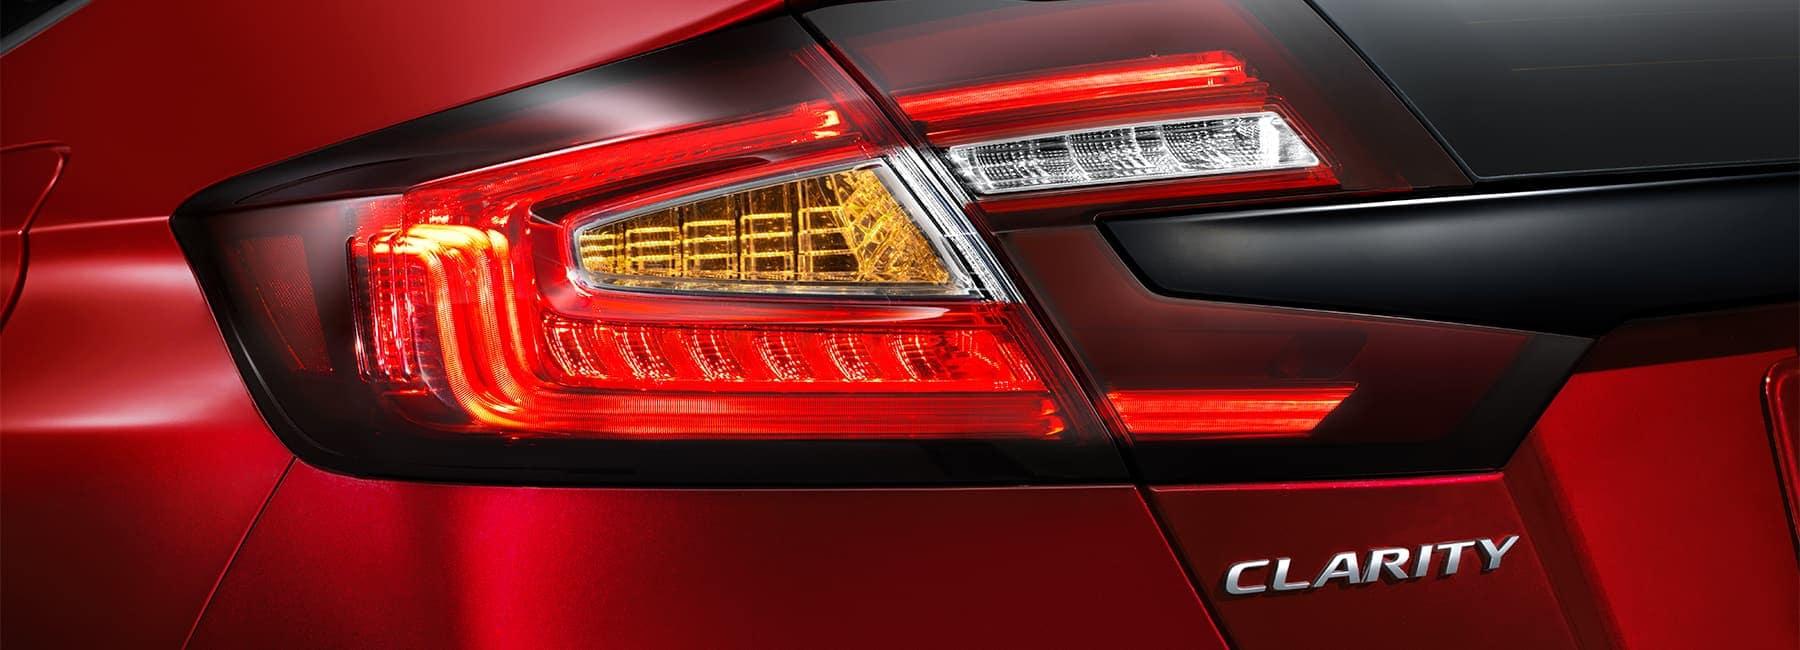 2020 Honda Clarity tail light